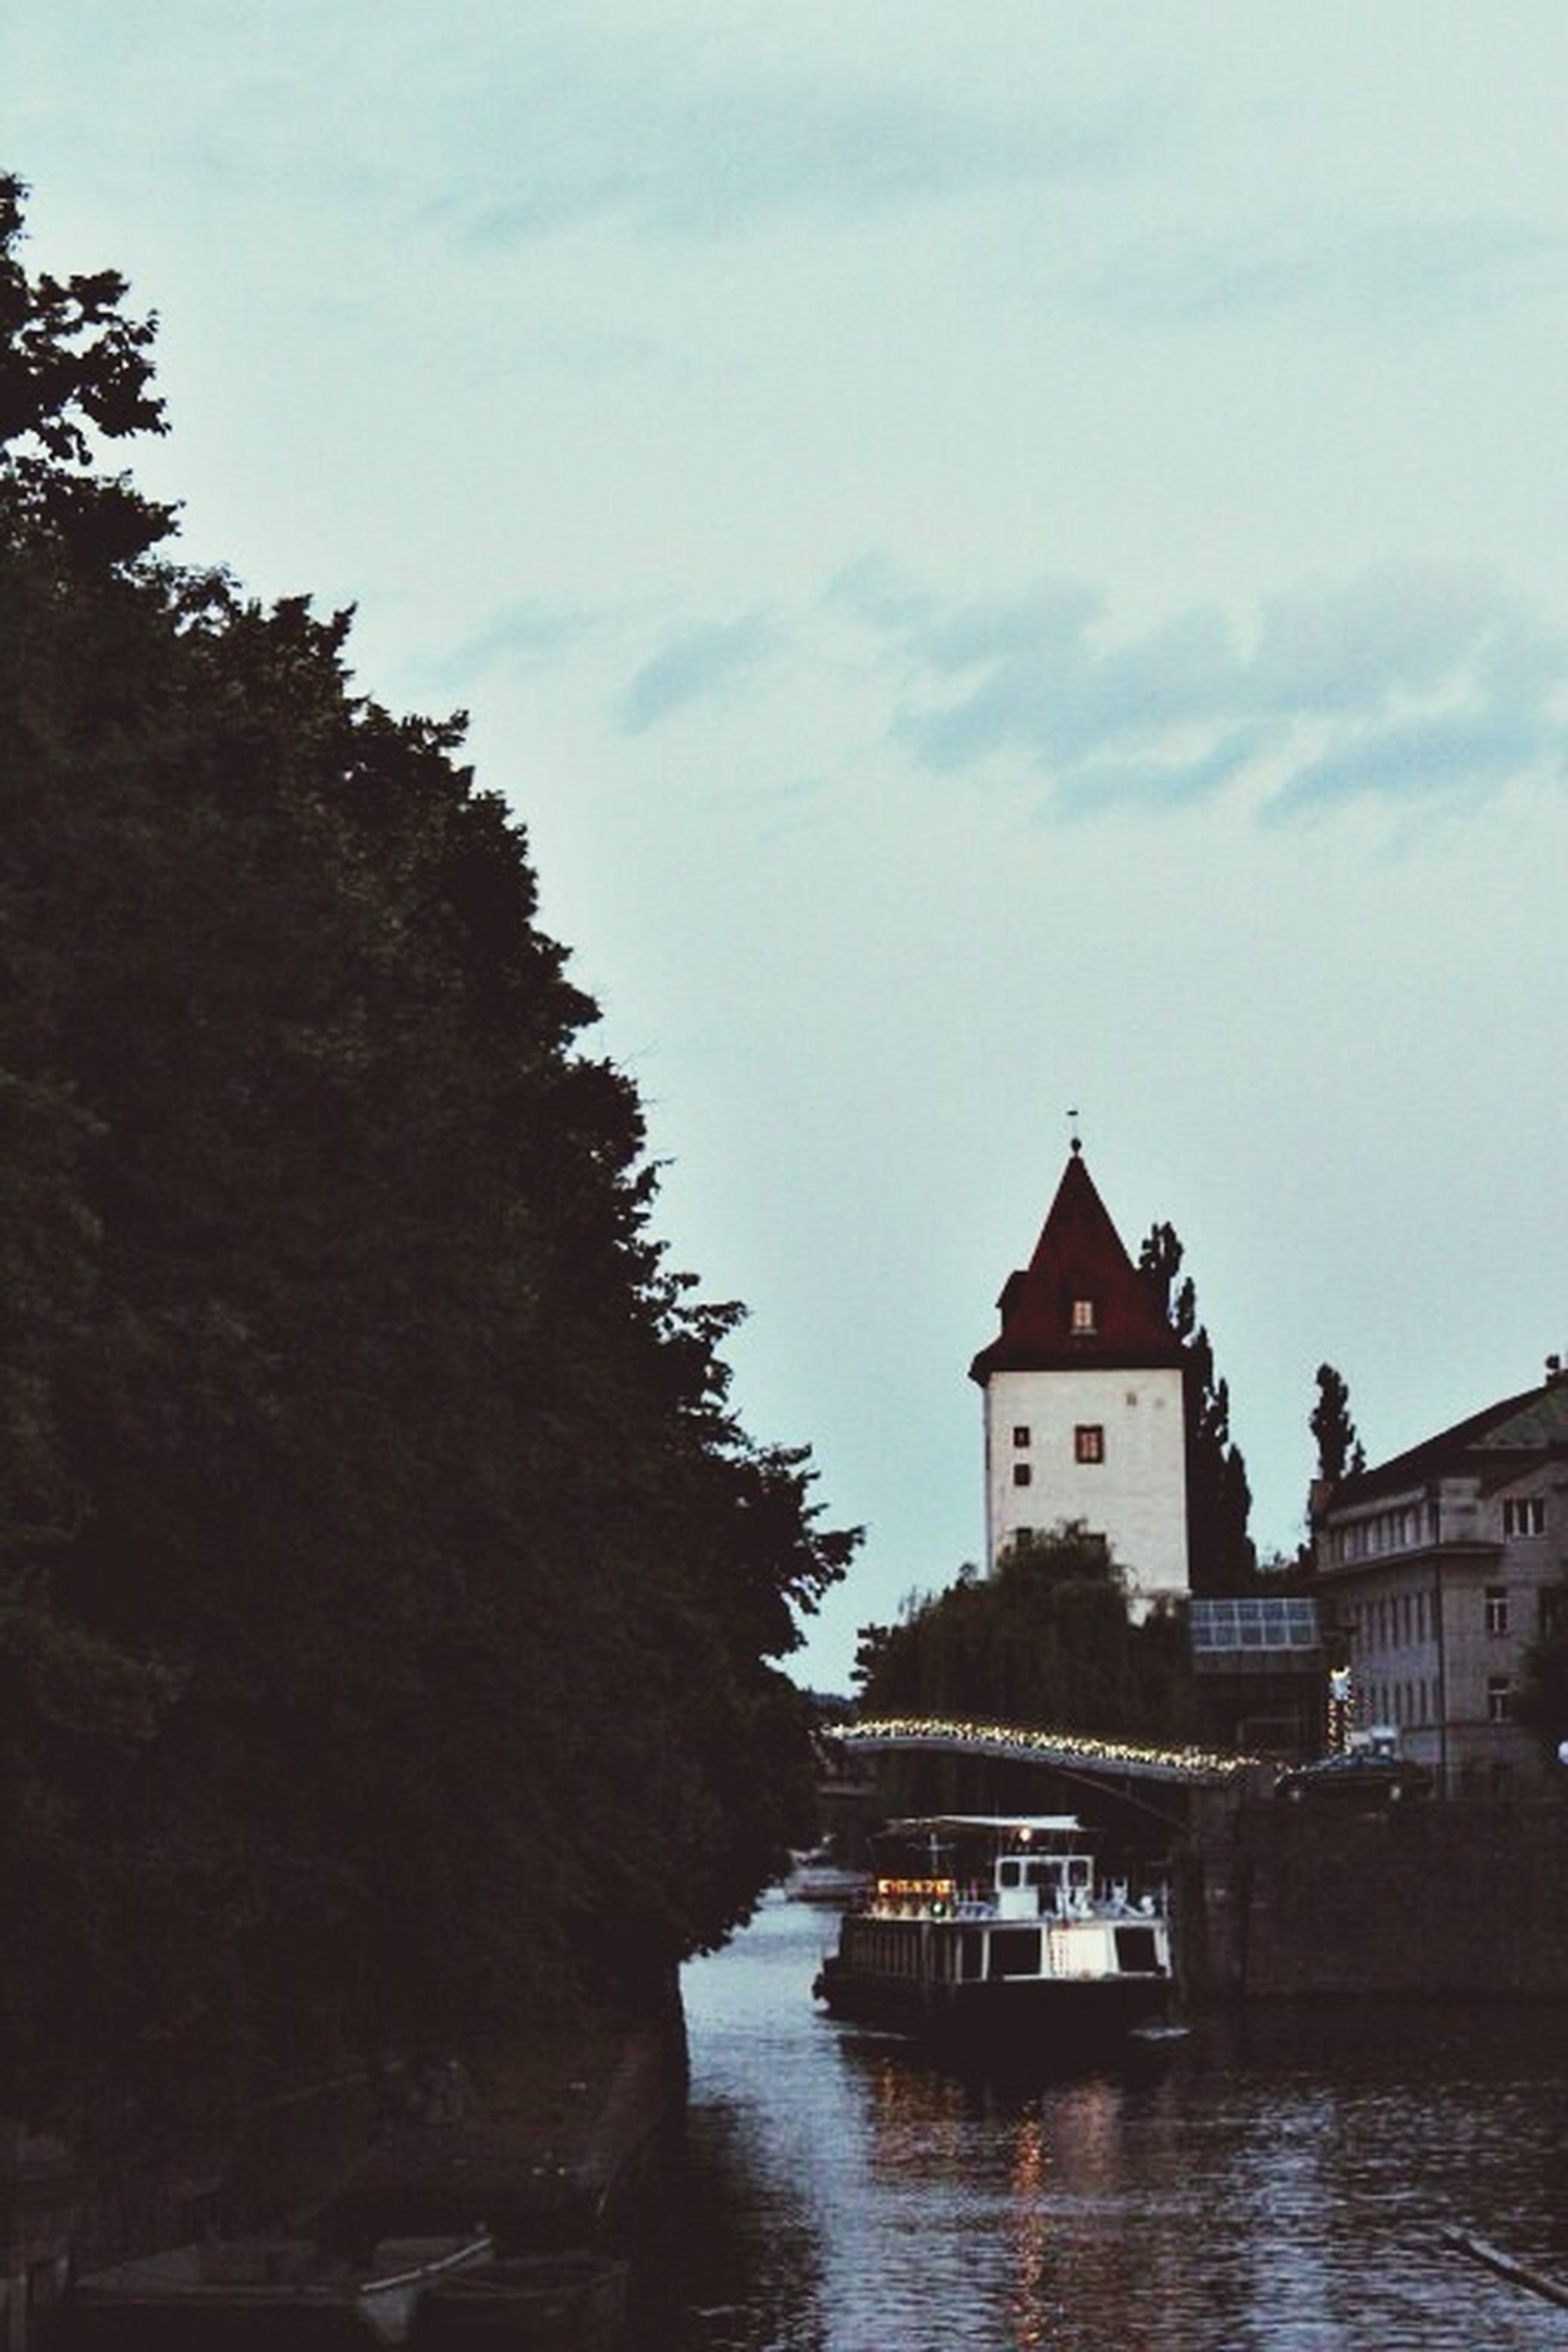 architecture, building exterior, built structure, water, waterfront, sky, tree, river, reflection, cloud - sky, lake, canal, house, cloud, church, outdoors, religion, nature, day